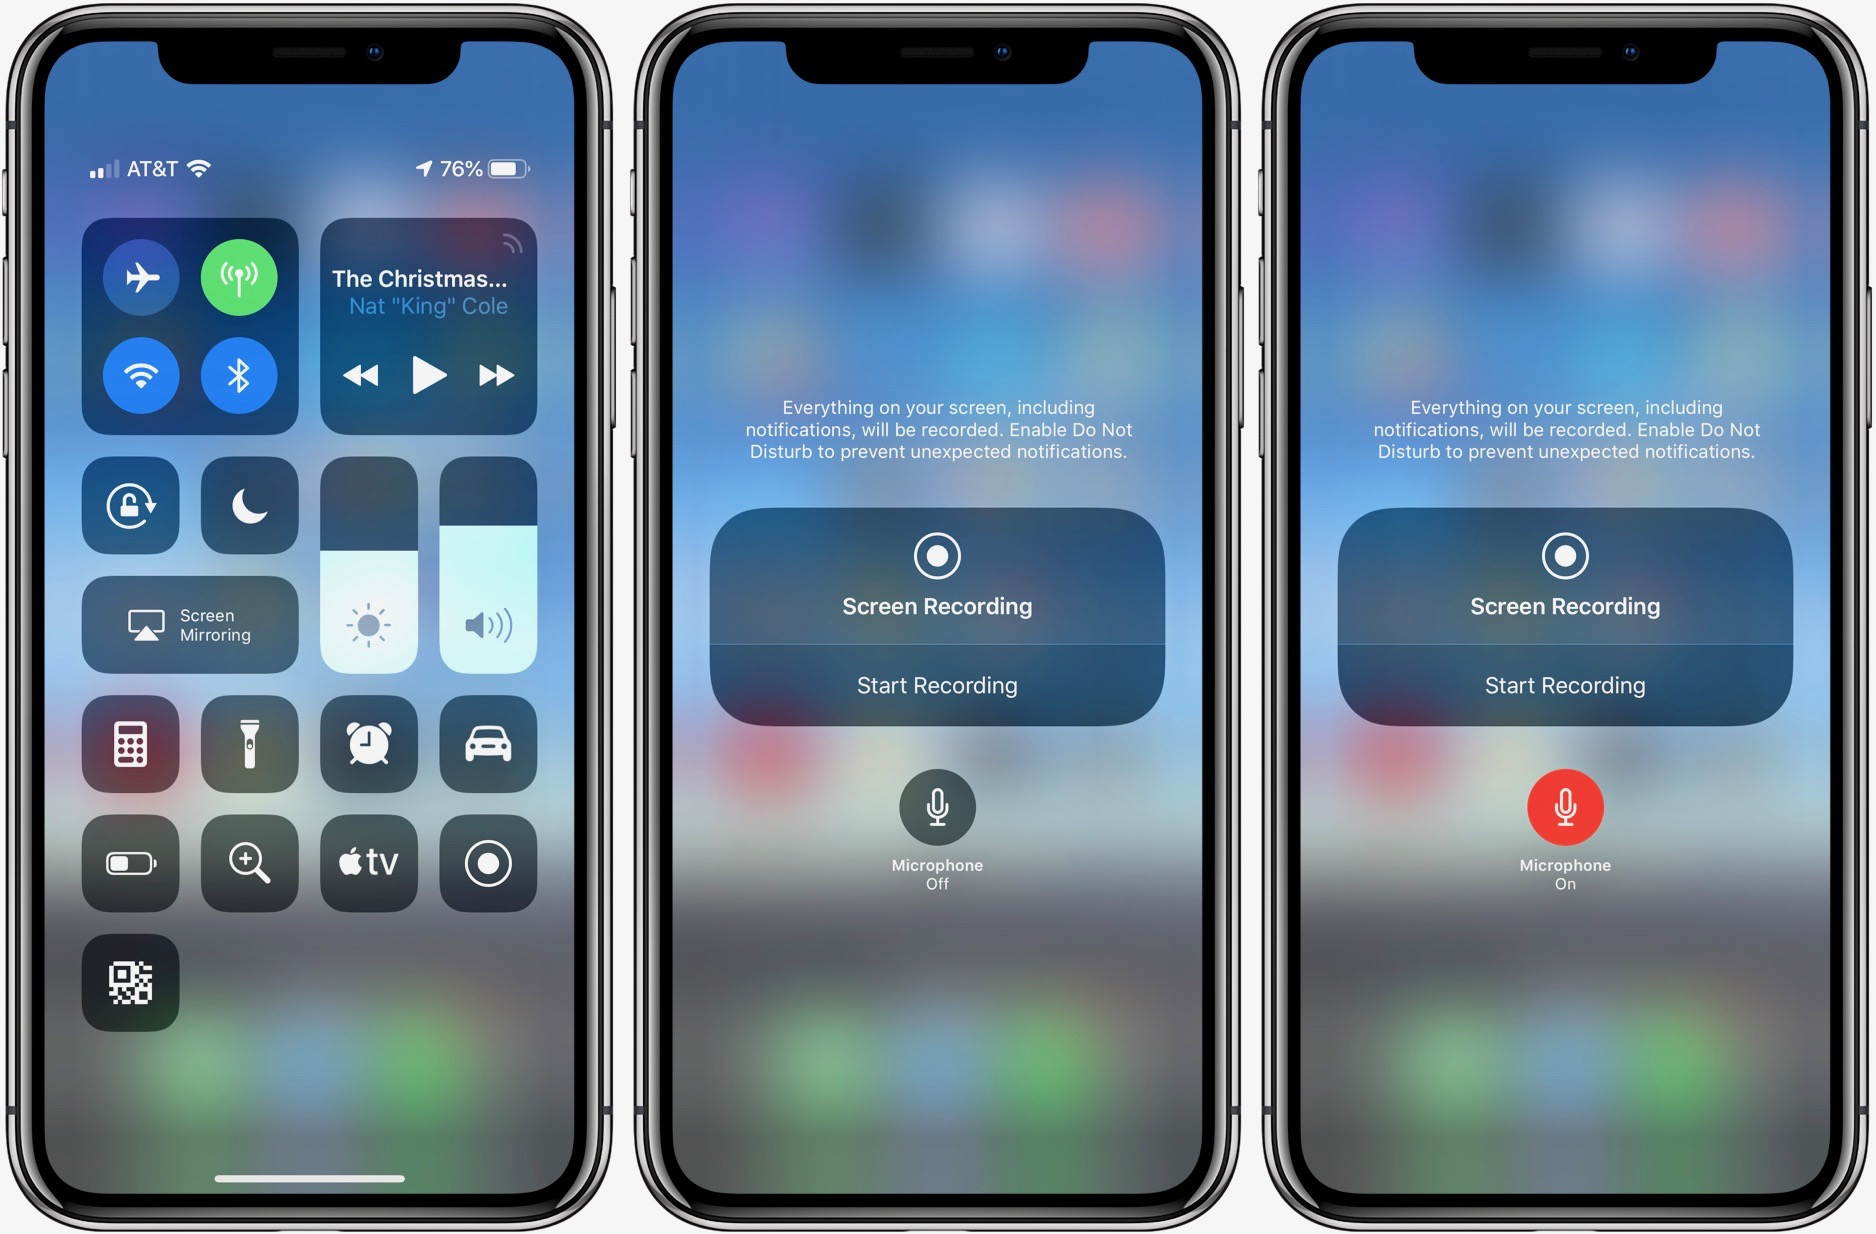 How to screen share with iPhone, iPad, and Mac to remotely help friends and family with new devices